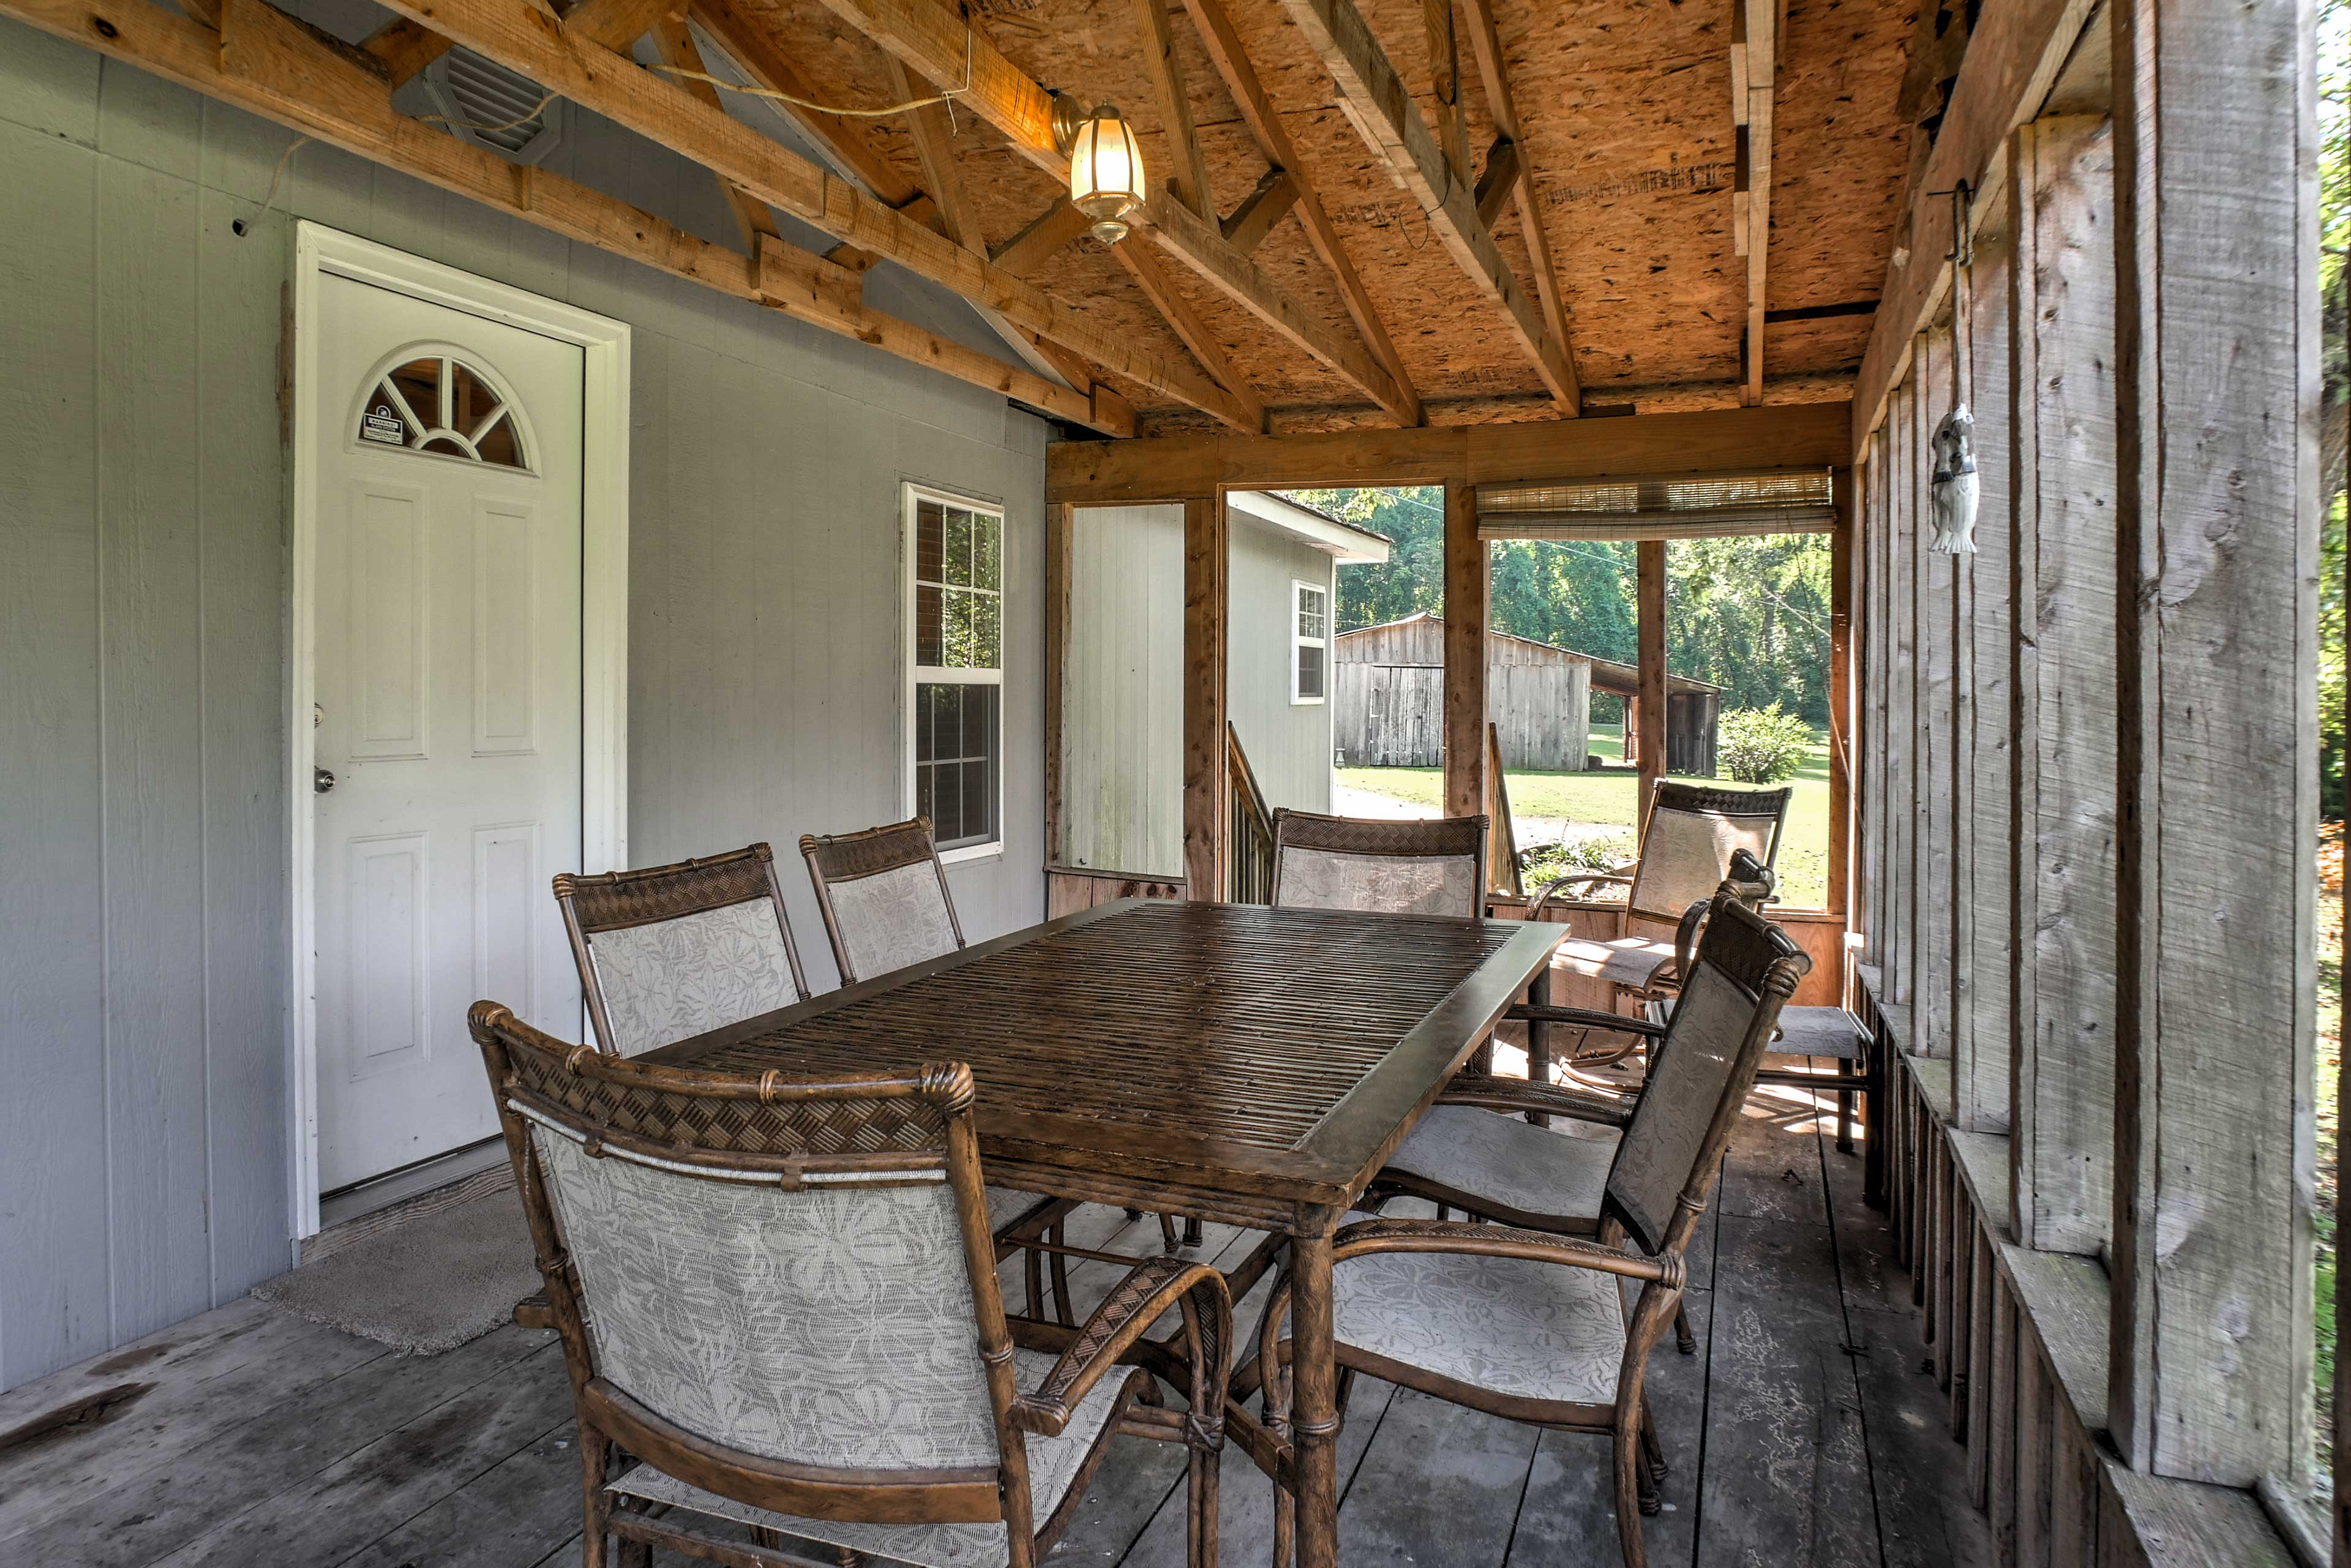 Dine outside in the screened-in comfort of the porch.